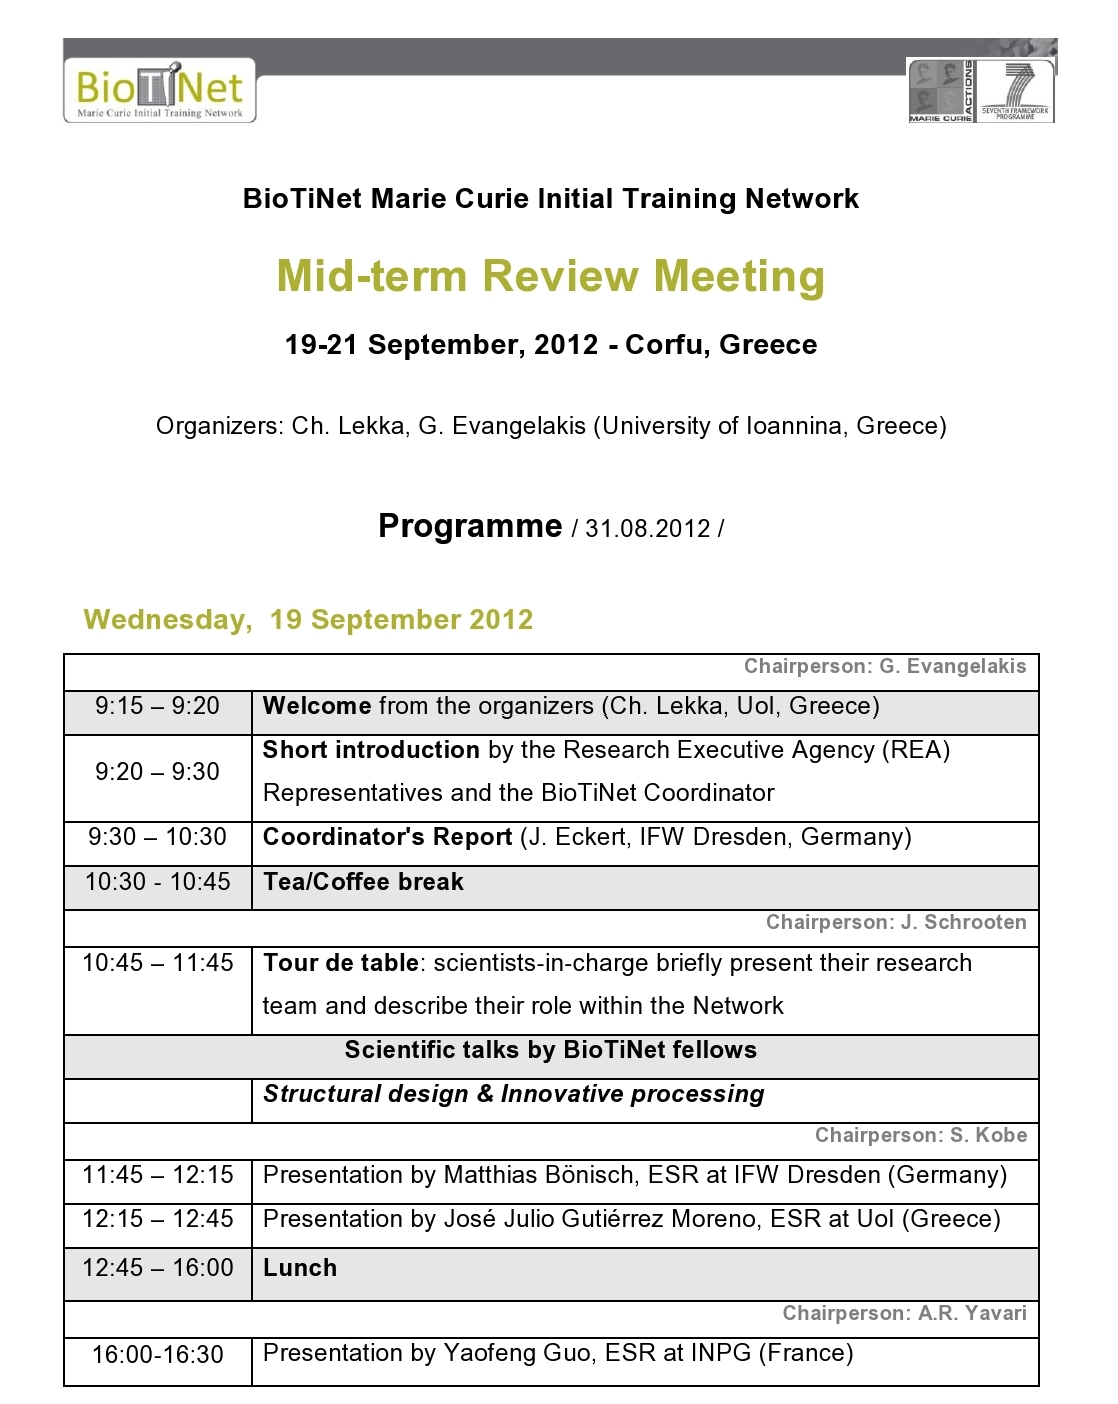 Workshop Midterm Meeting Agenda – Meeting Agenda